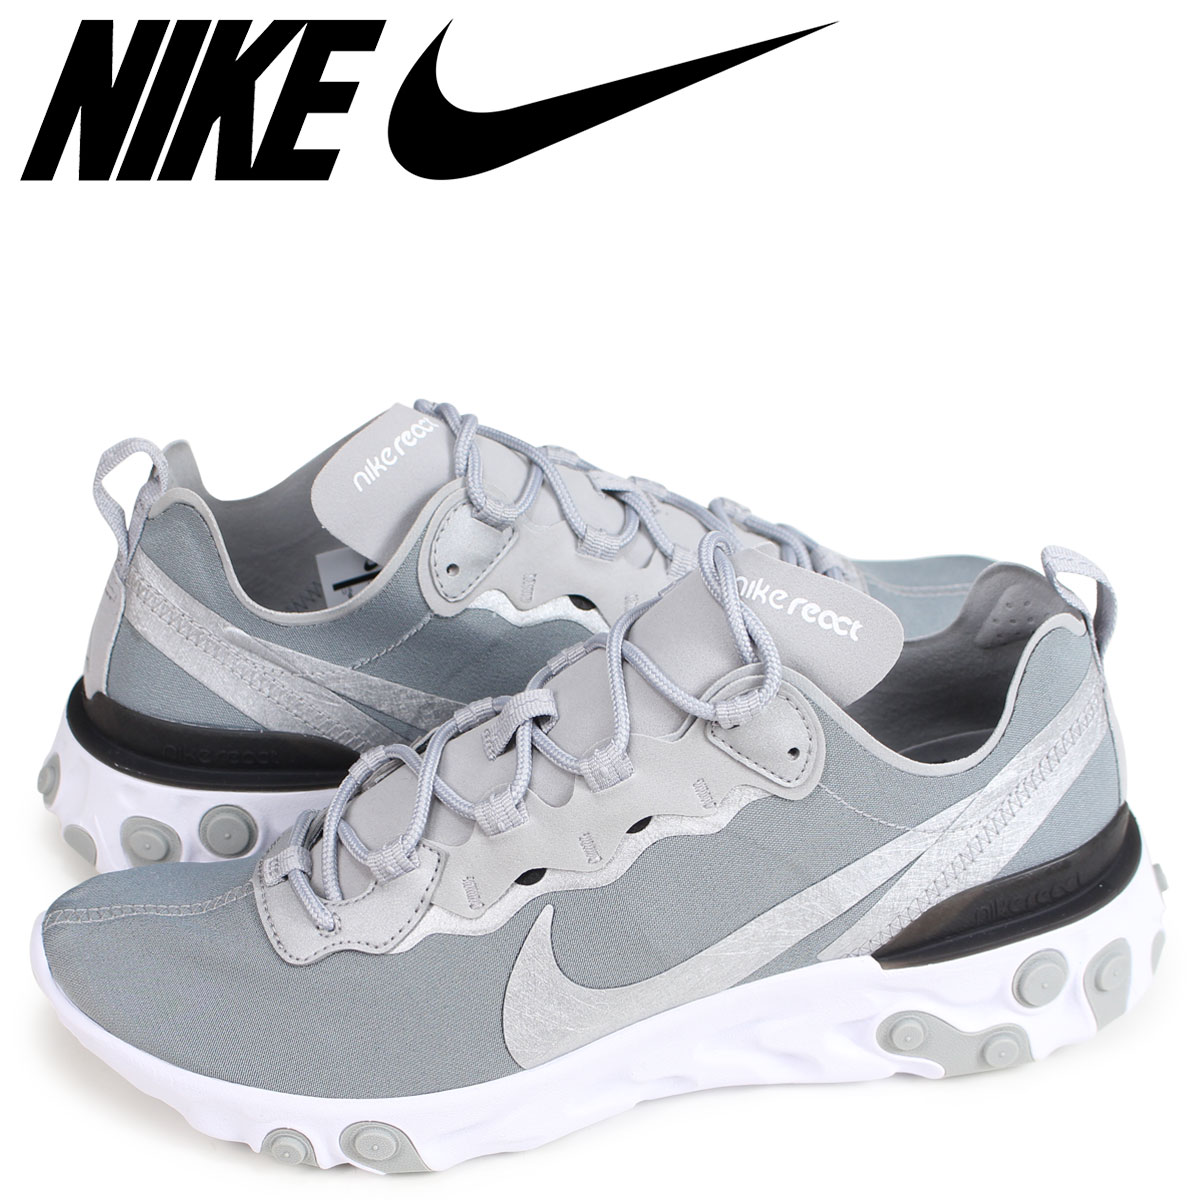 reputable site f781d 280f6 NIKE REACT ELEMENT 55 Ney drill act element 55 sneakers men silver  BQ6166-007